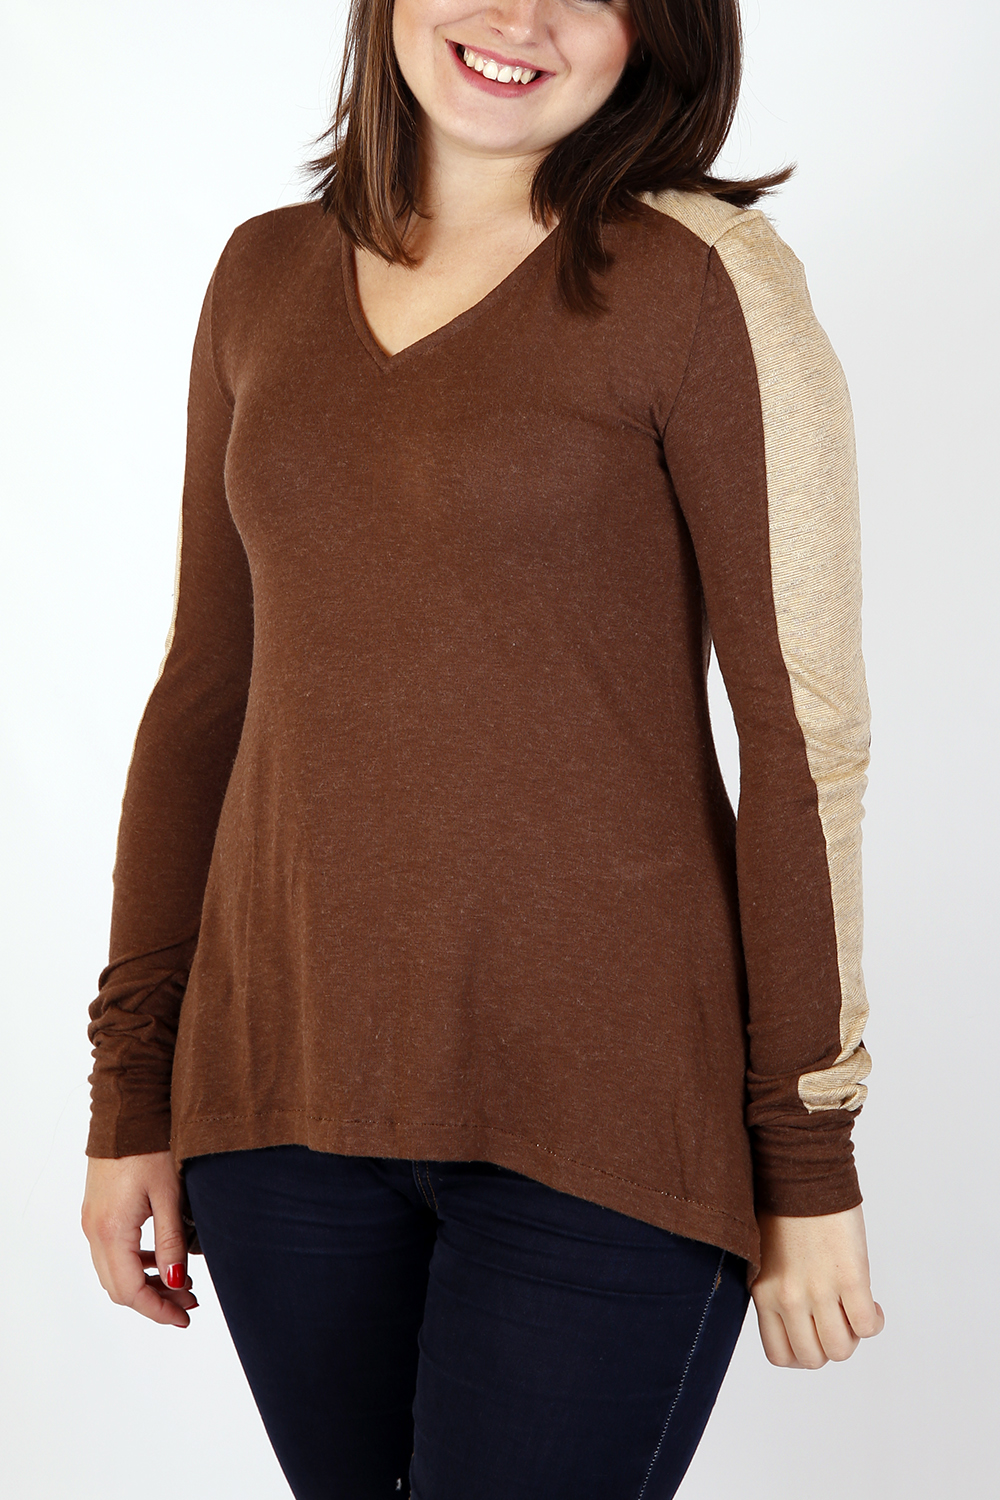 Top marron et beige